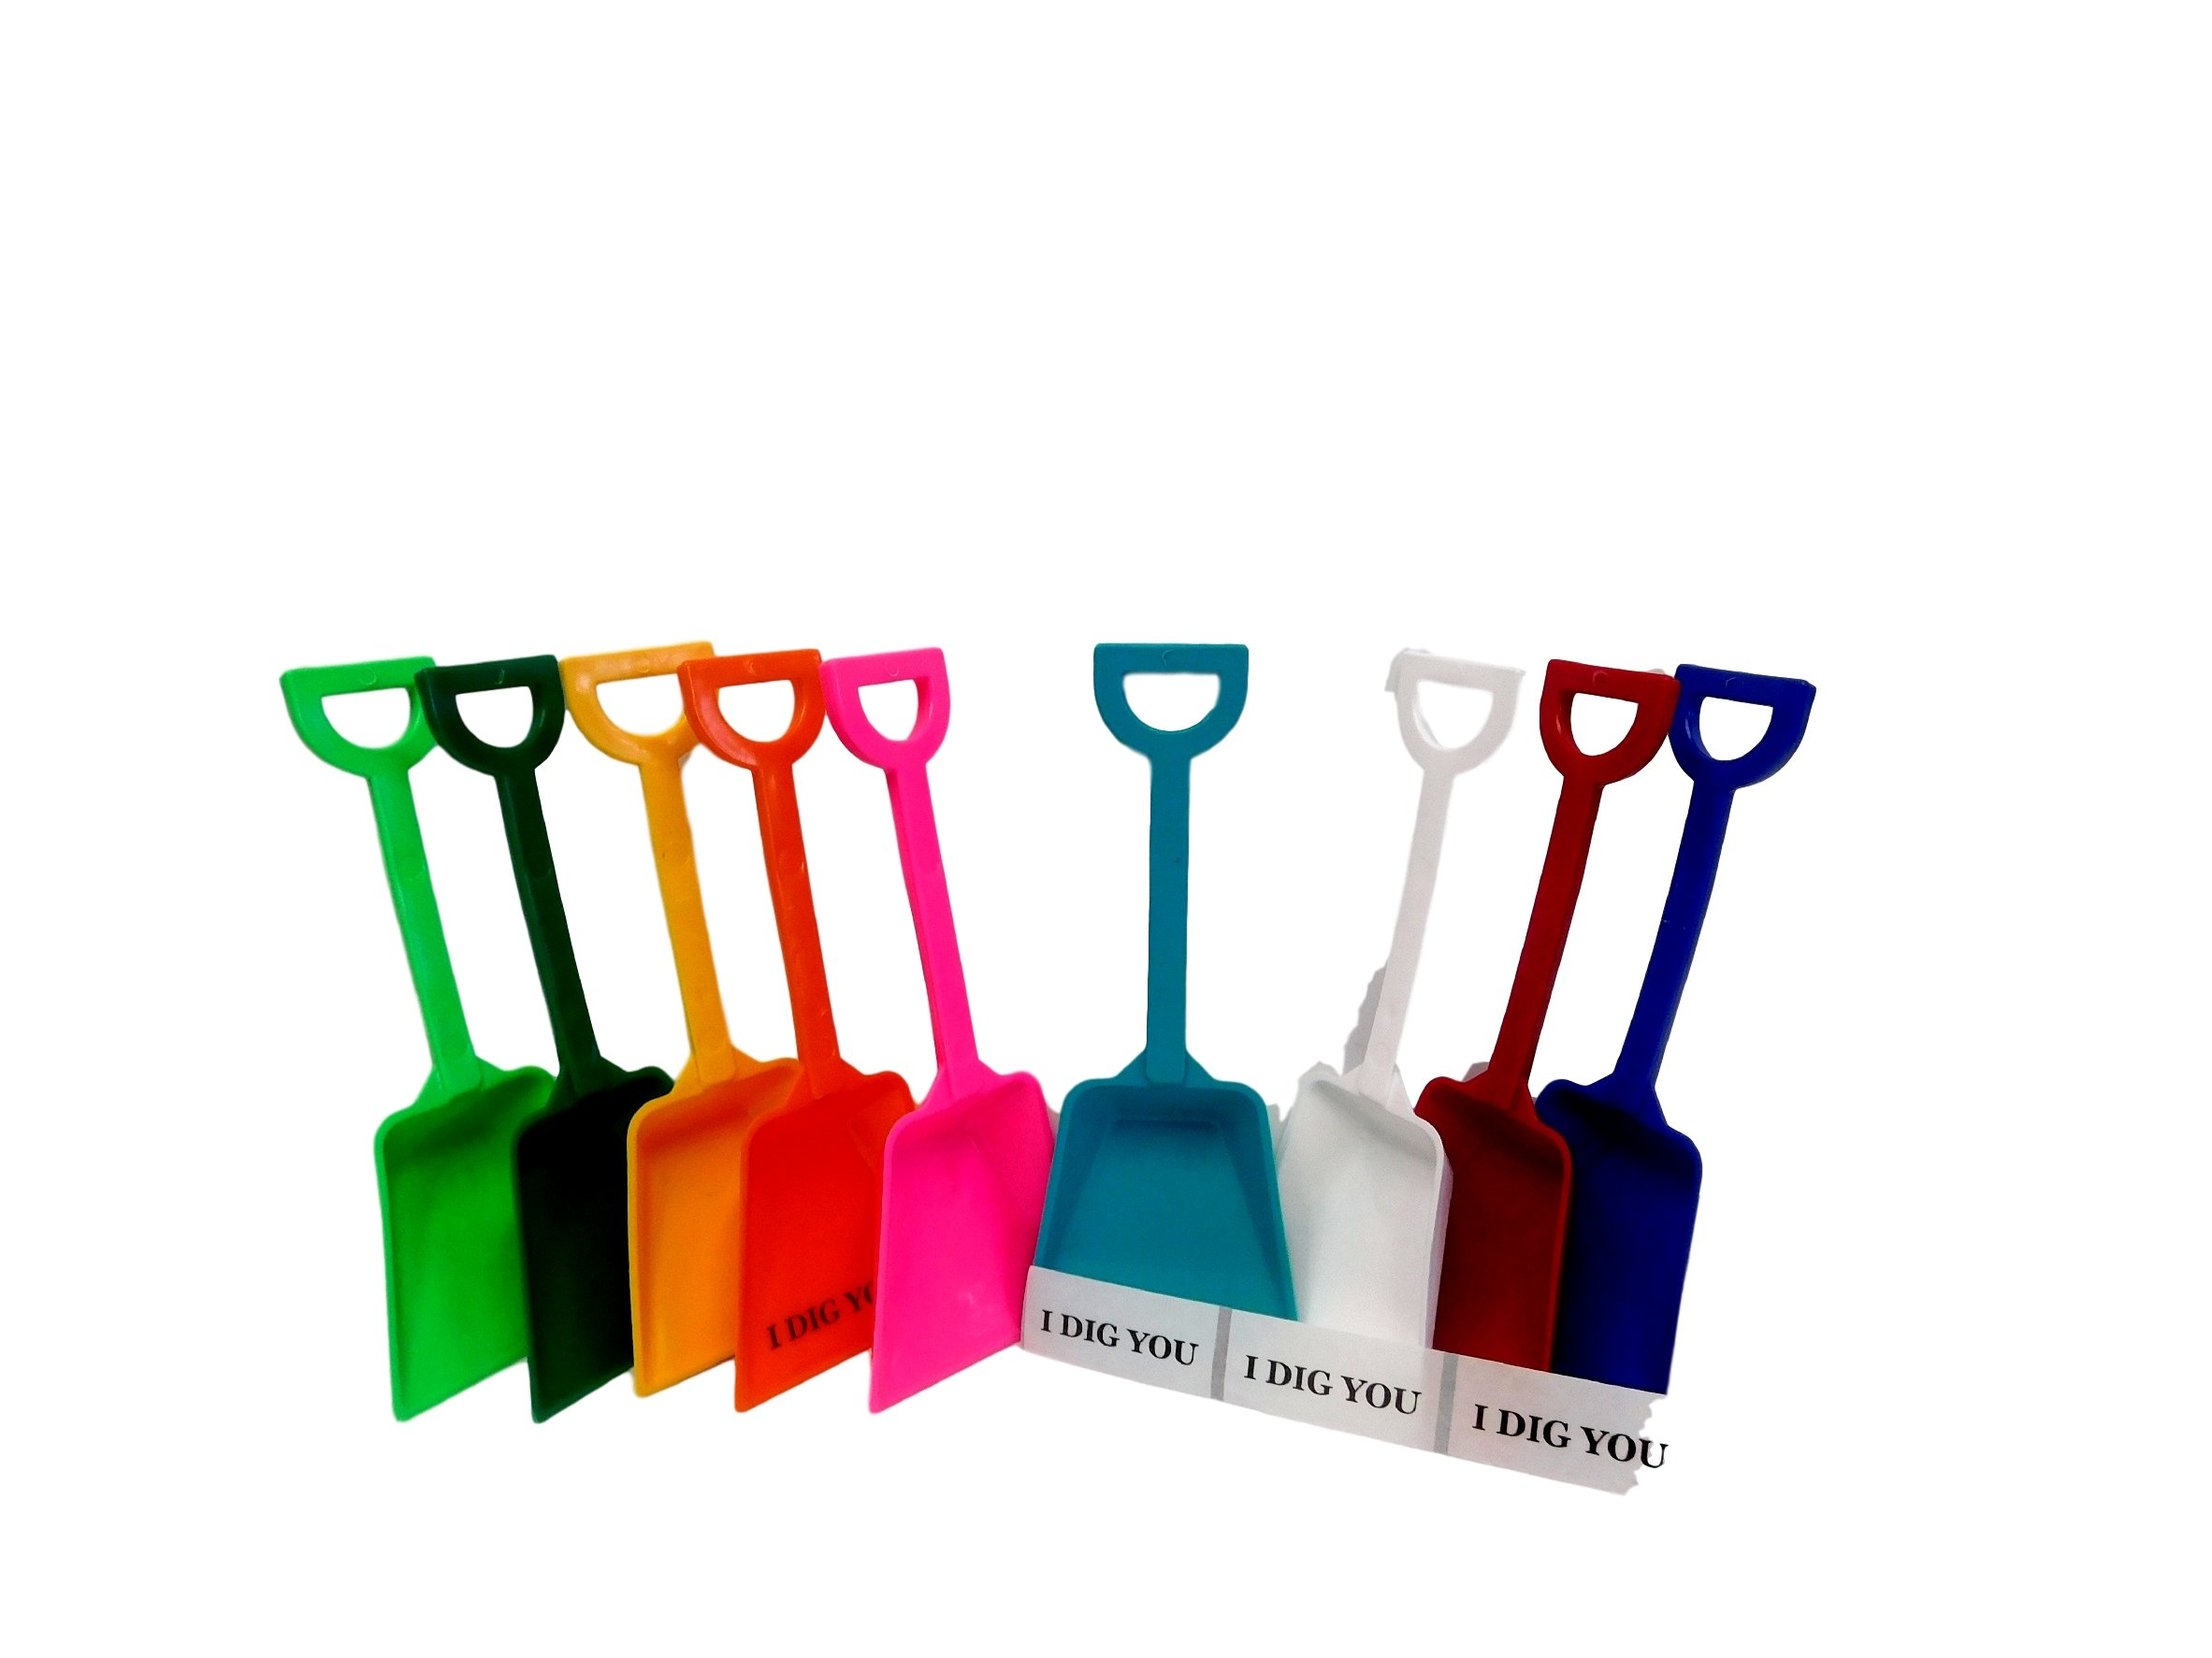 Small Toy Plastic Shovels, Wholesale Lot, Pack 500, Mix of Colors & I Dig You Stickers